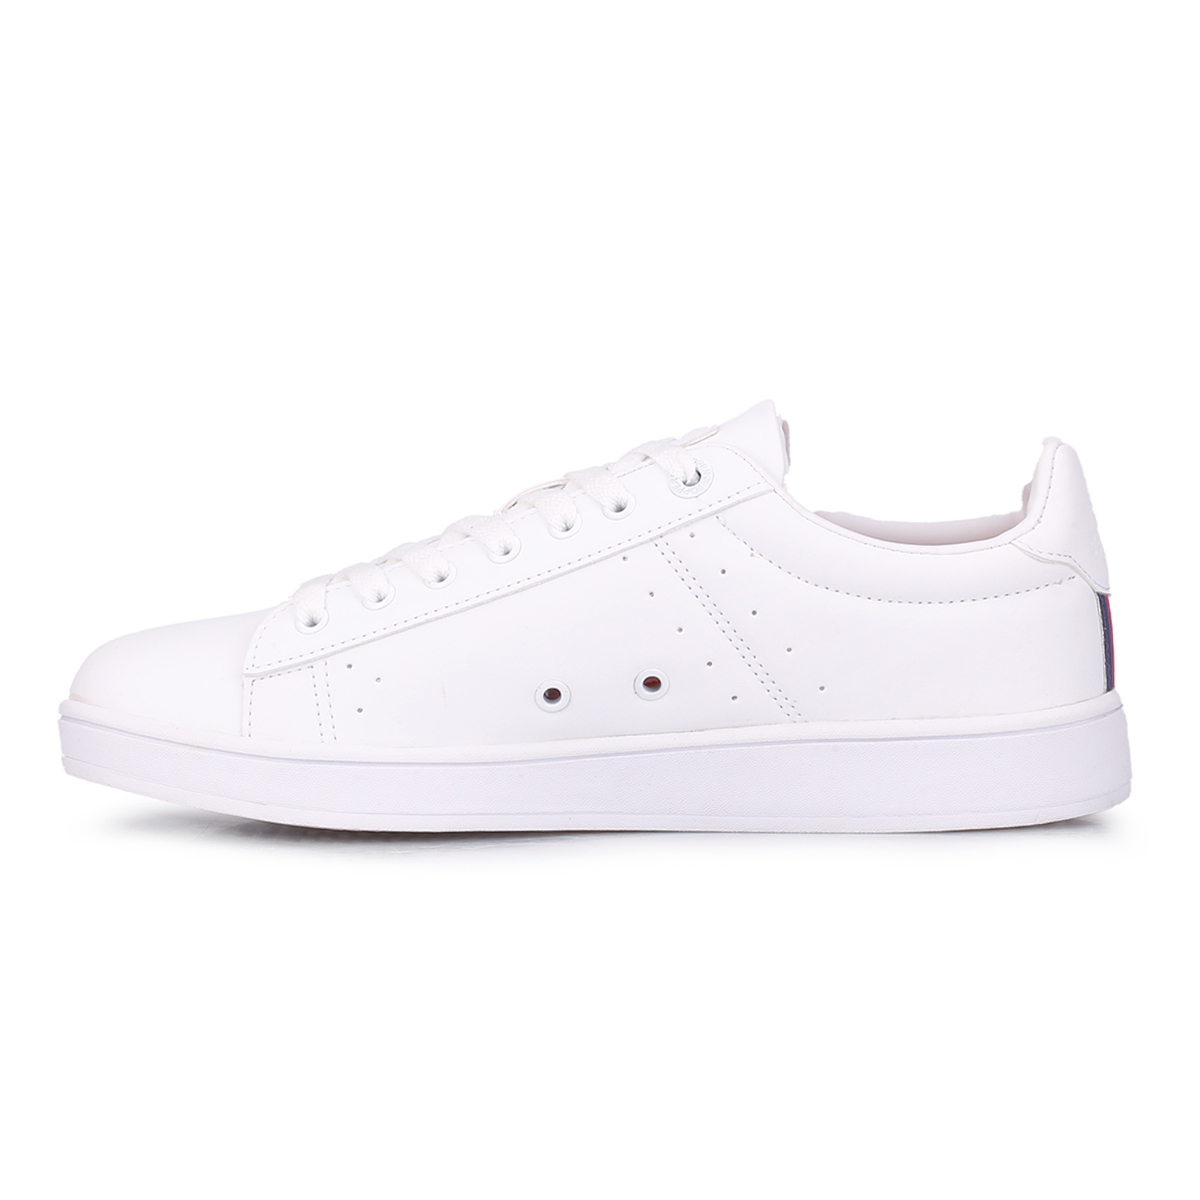 Zapatillas Topper Capitan Tt,  image number null